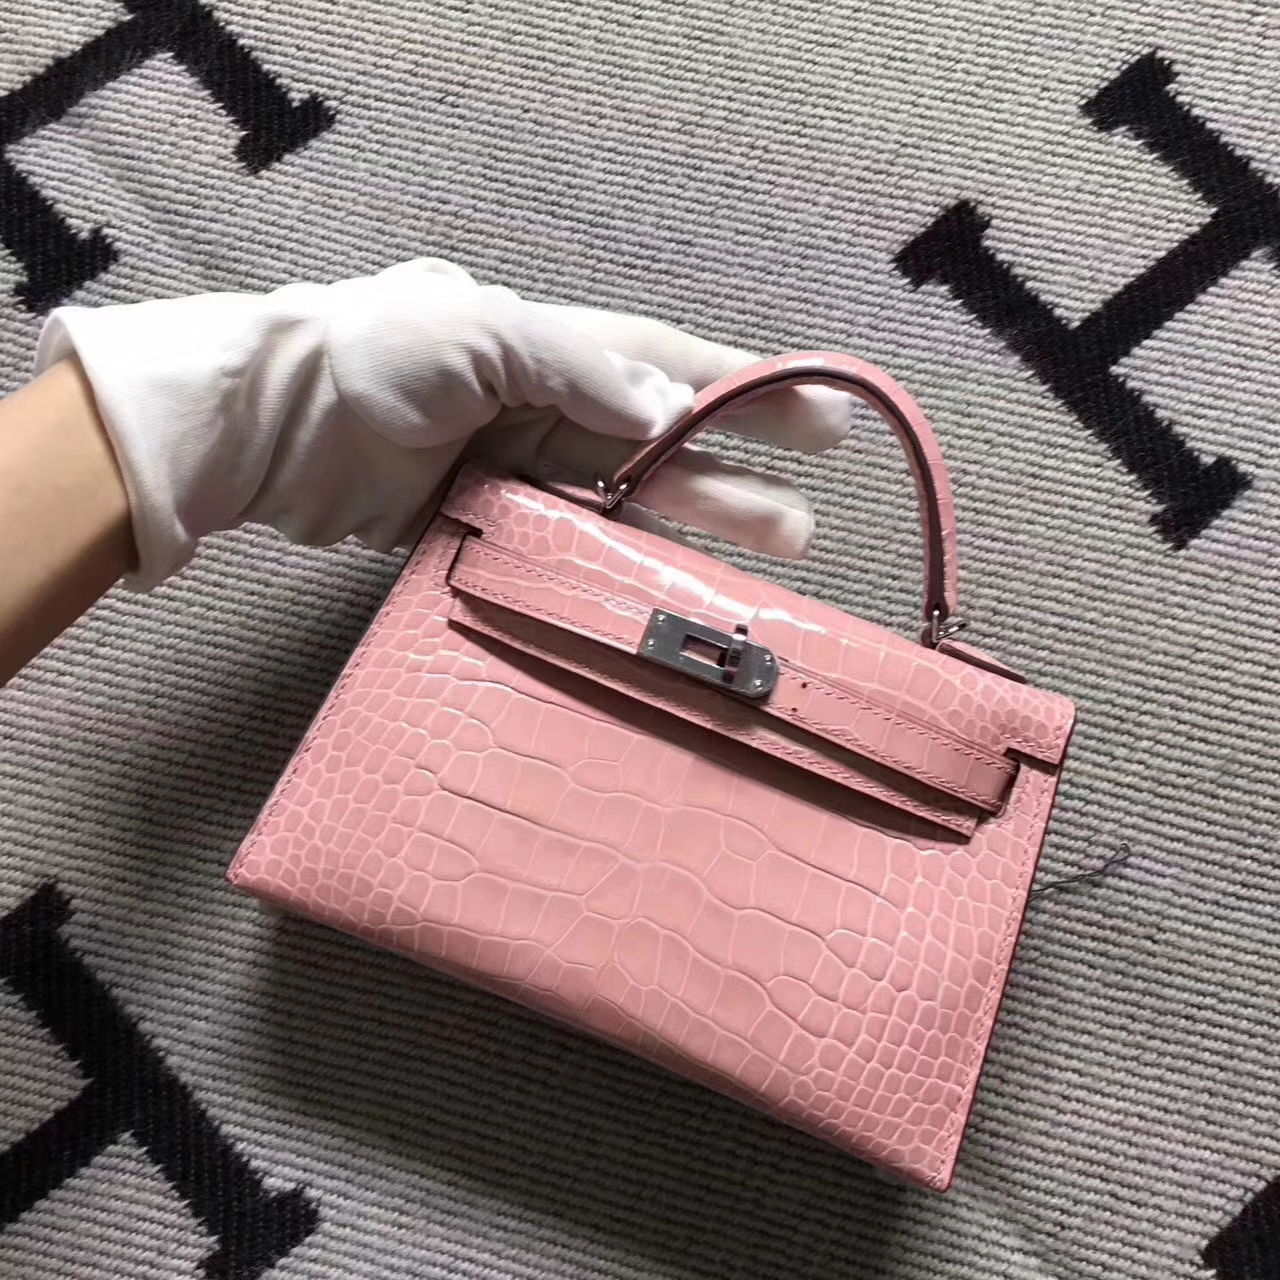 Beautiful Hermes Clutch Bag Pink Crocodile Shiny Leather Minikelly-2 Handbag